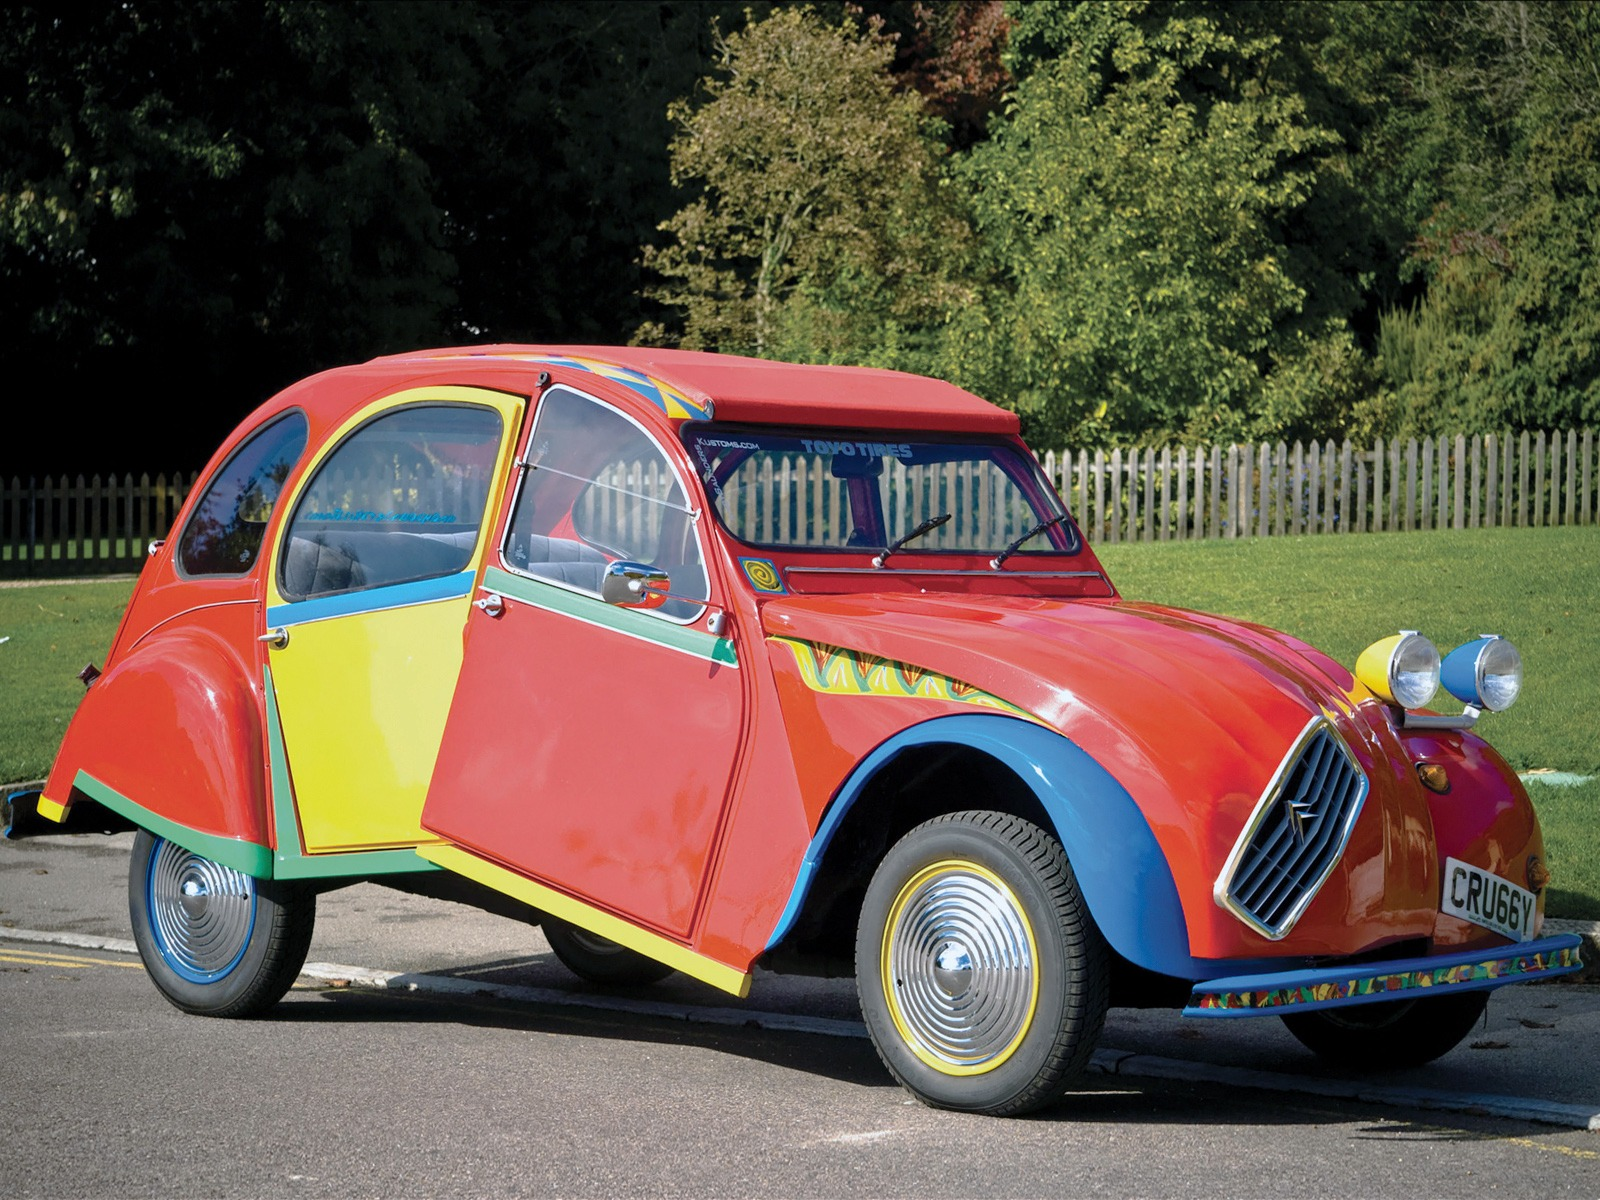 citro n 2cv6 picasso citro n by andy saunders 1983 old concept cars. Black Bedroom Furniture Sets. Home Design Ideas